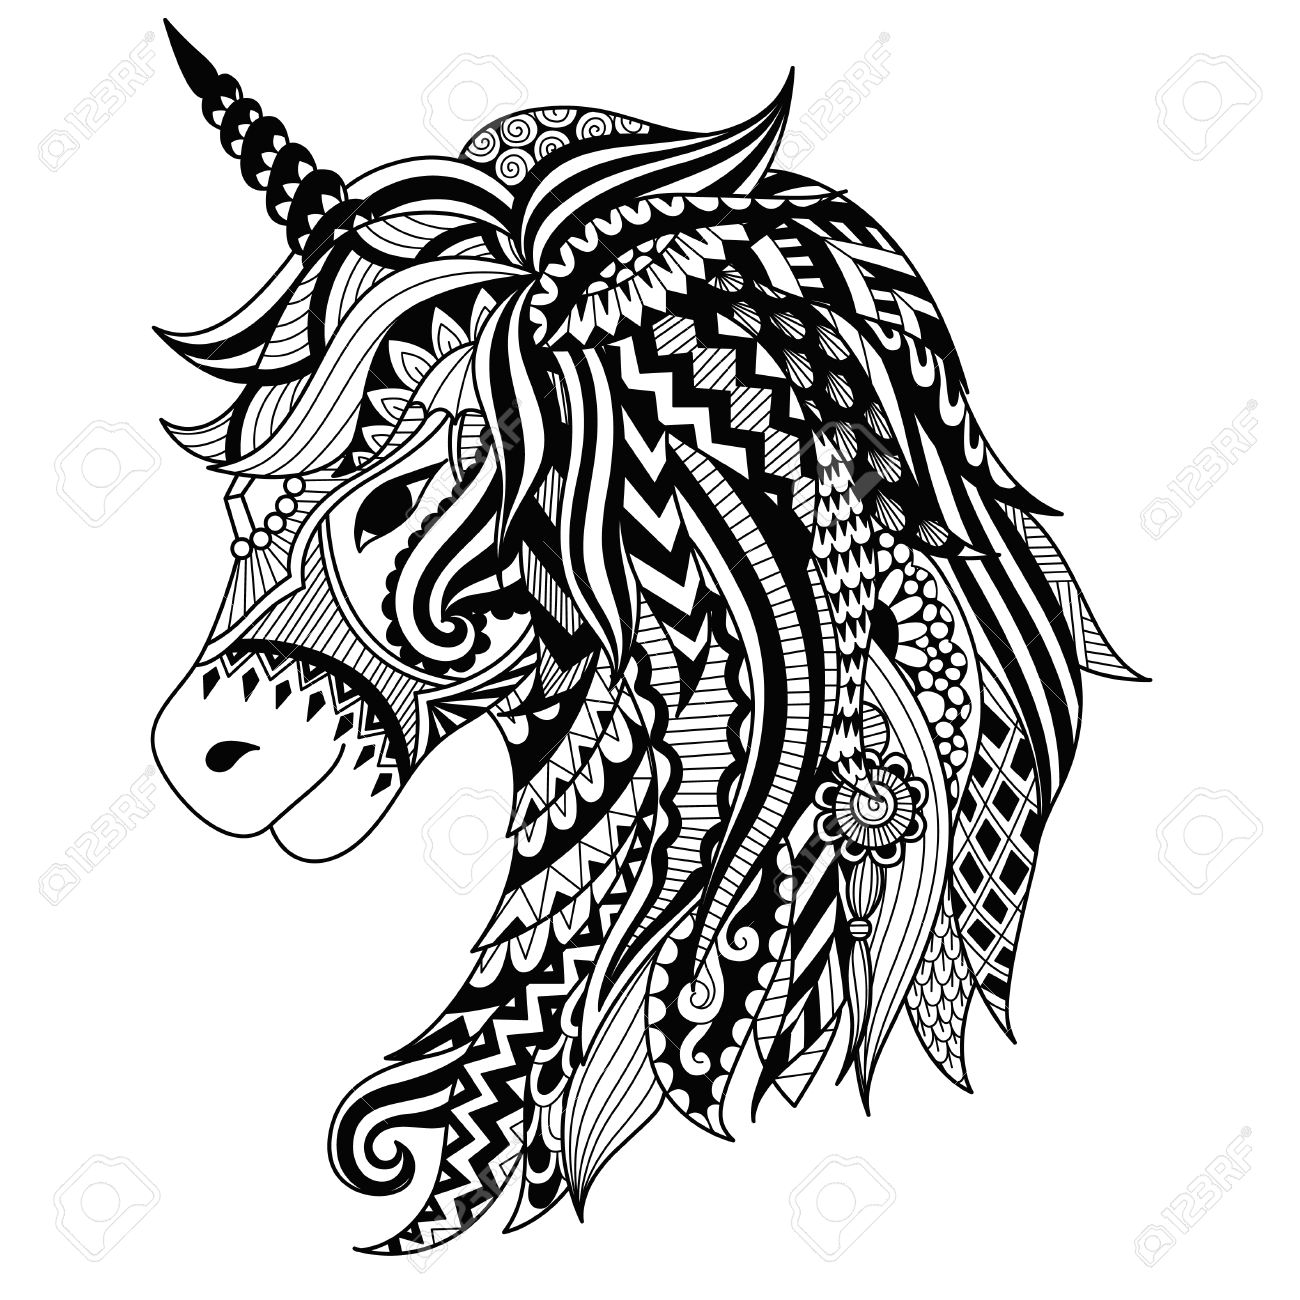 Drawing unicorn zentangle style for coloring book, tattoo, shirt design, logo, sign. stylized illustration of horse unicorn in tangle doodle style. - 83948002